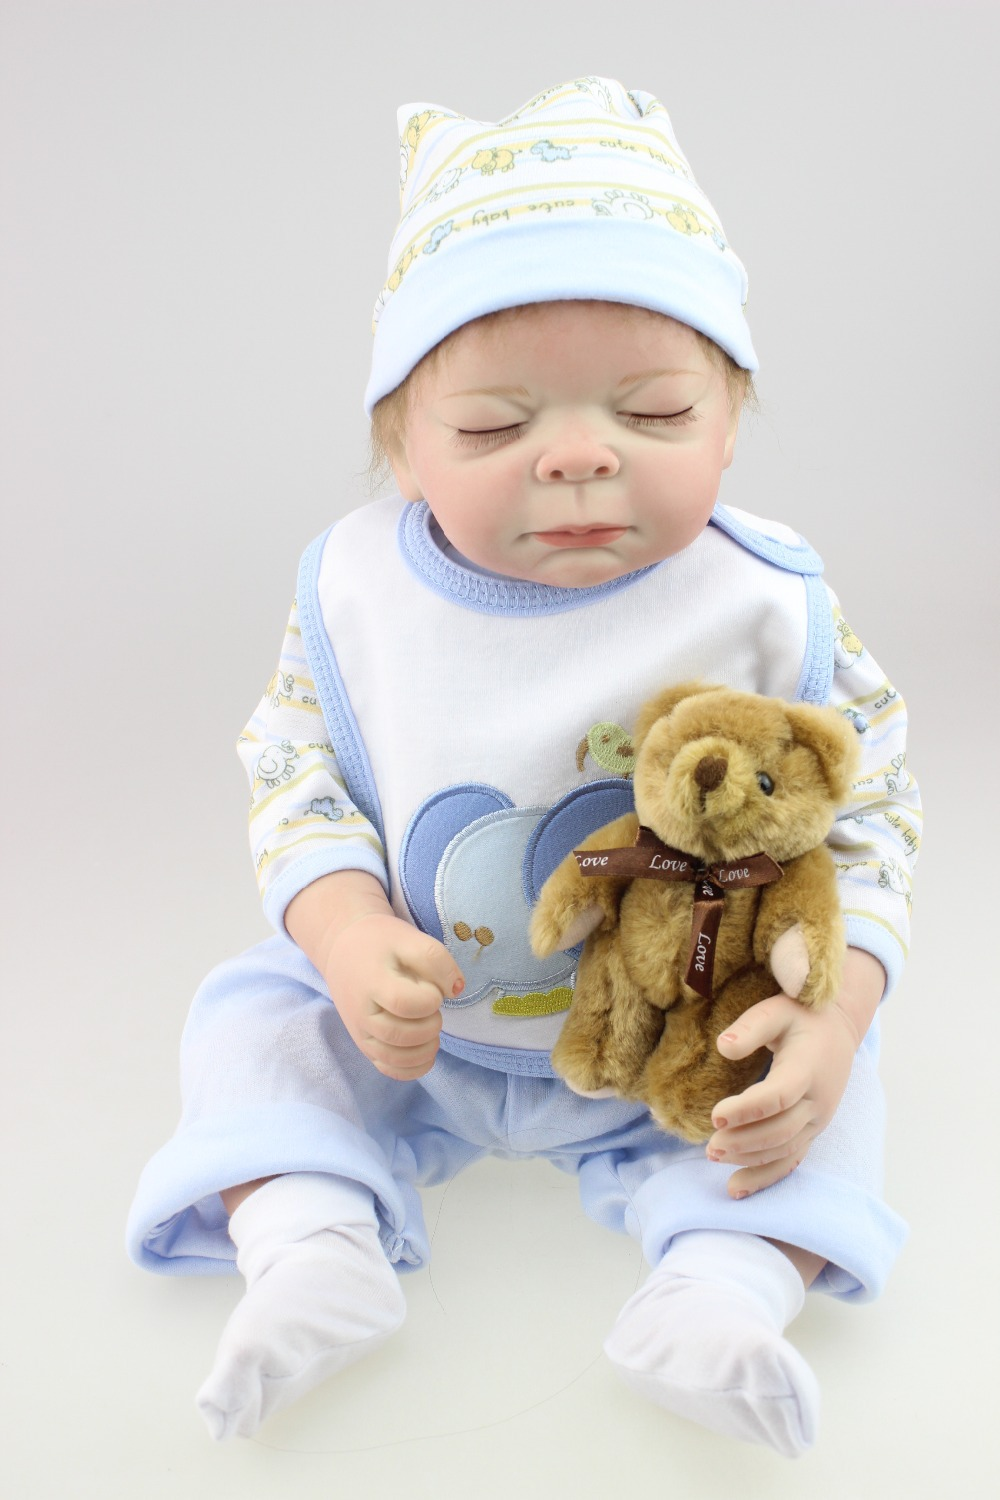 2016 Newborn Simulation Babydoll Silicone Vinyl Doll Educational Baby toys Girls Present with soft PP cotton body newborn simulation babydoll silicone vinyl doll educational enlightenment baby toys girls present